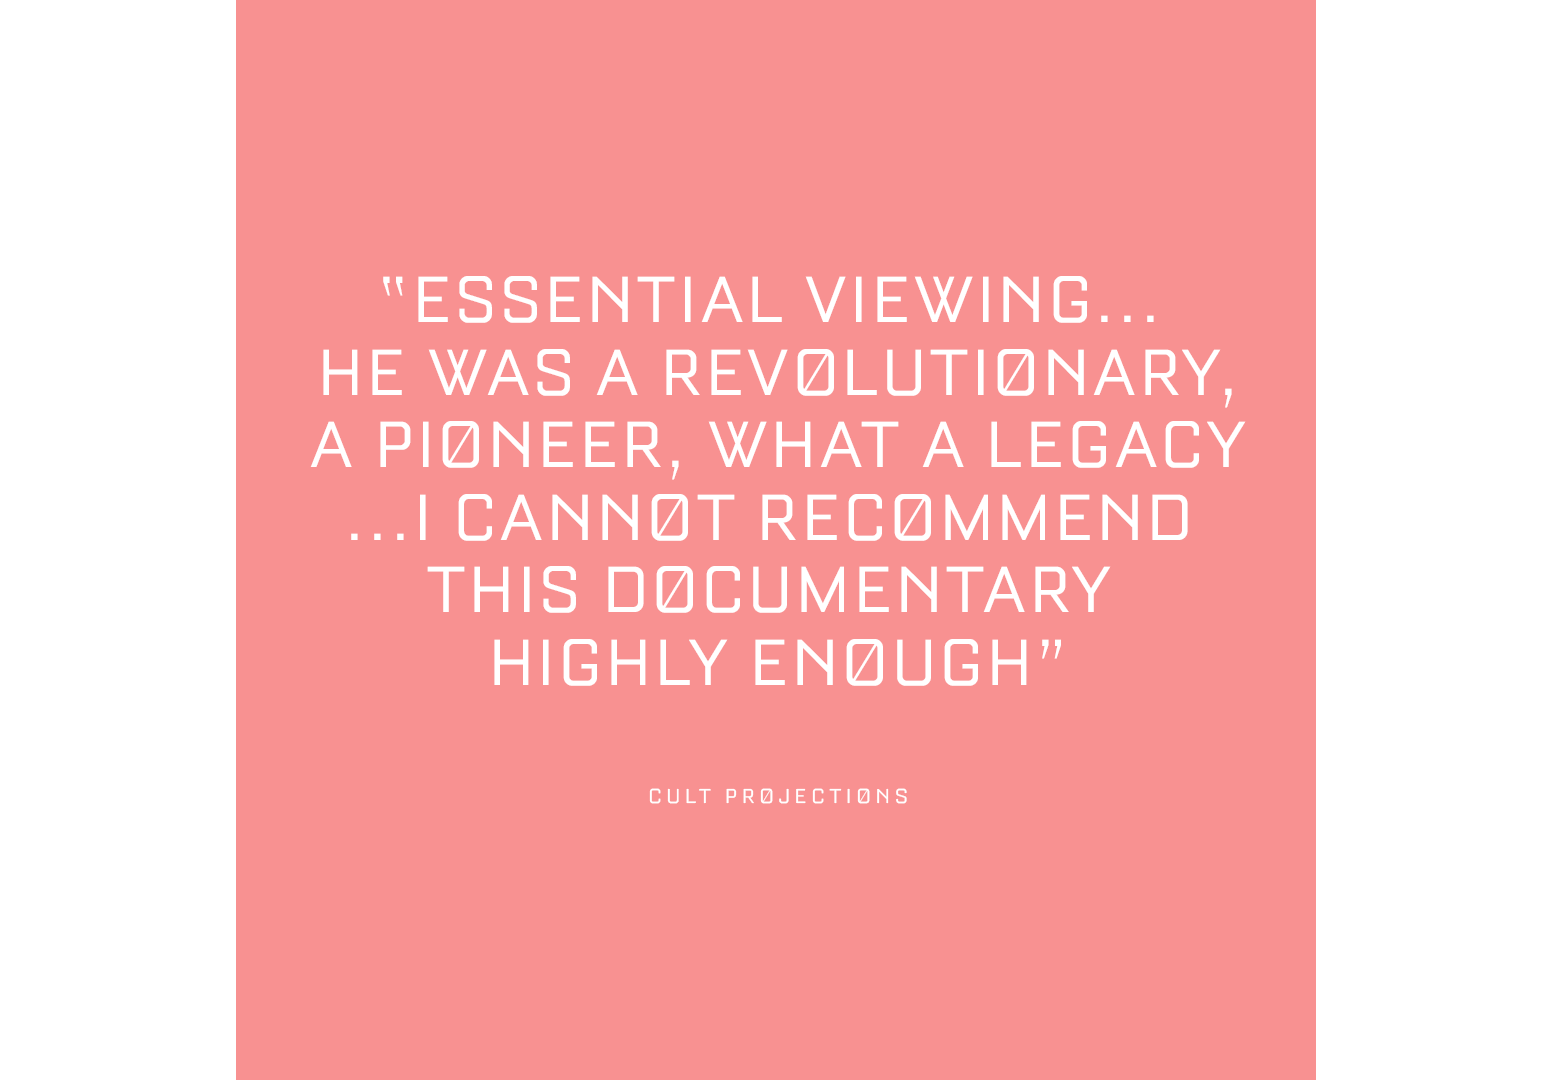 cultprojections_quote_V4.png